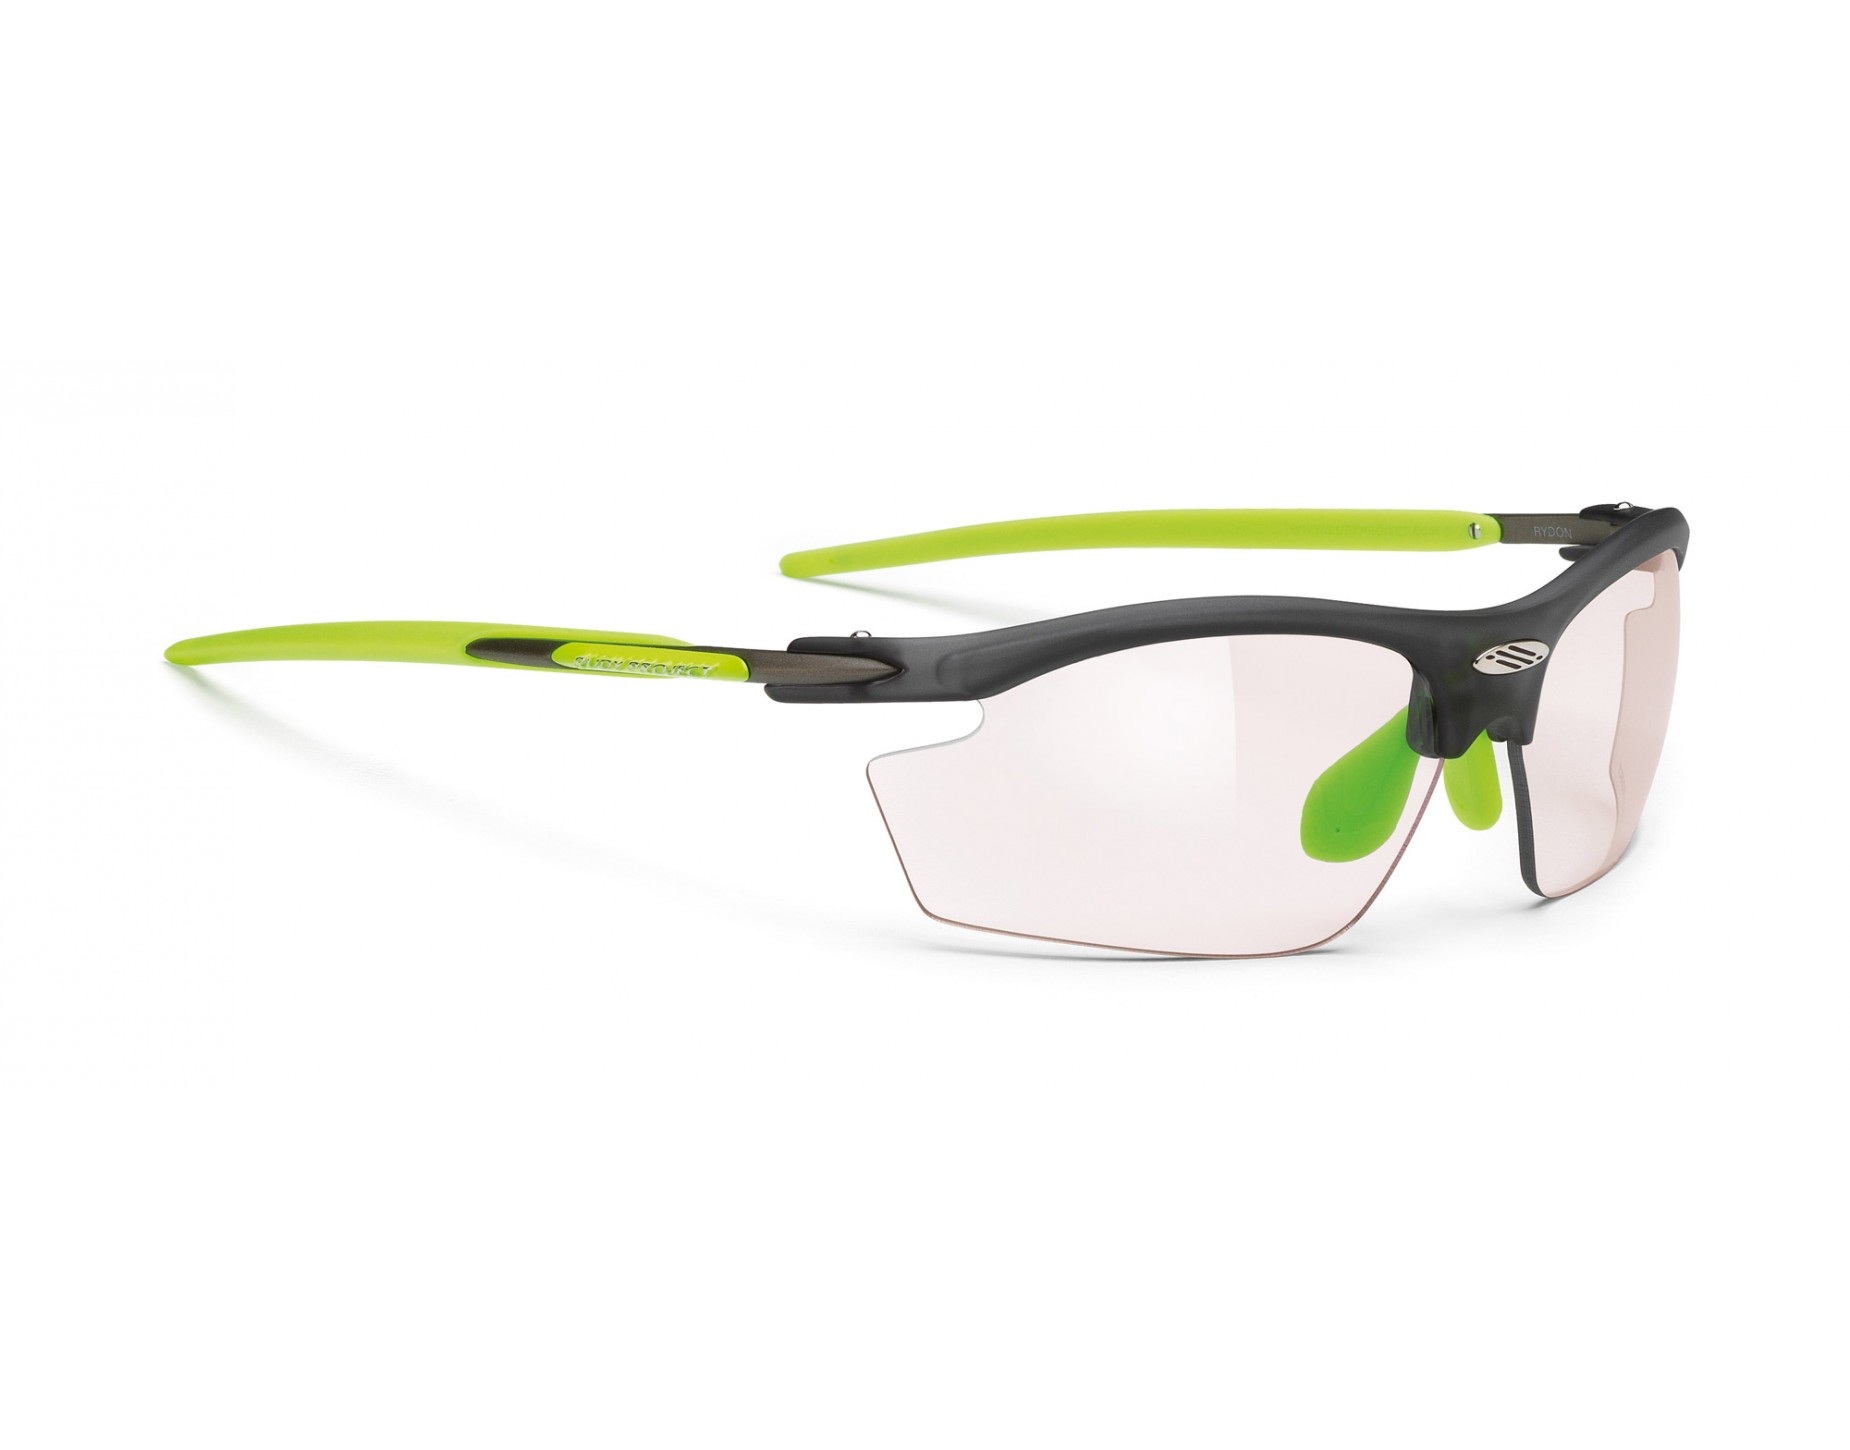 rudy project rydon Rudy project project rydon eyewear user reviews : 37 out of 5 - 14 reviews read it's strength, weaknesses, find deals and pricing - roadbikereviewcom.